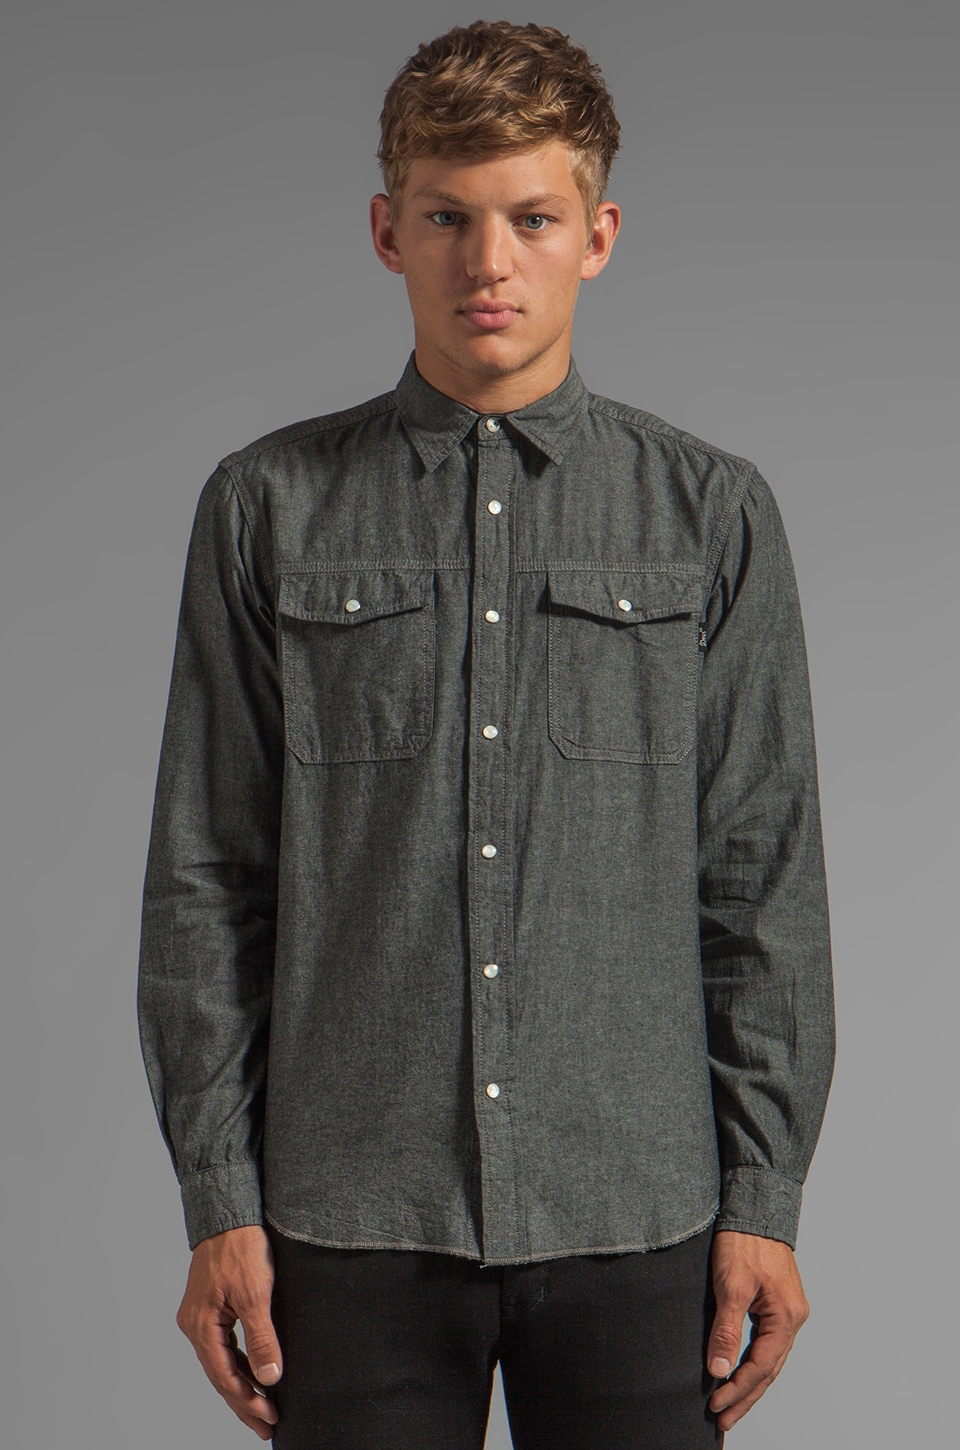 Deus Ex Machina Zeb Minus Shirt in Washed Black